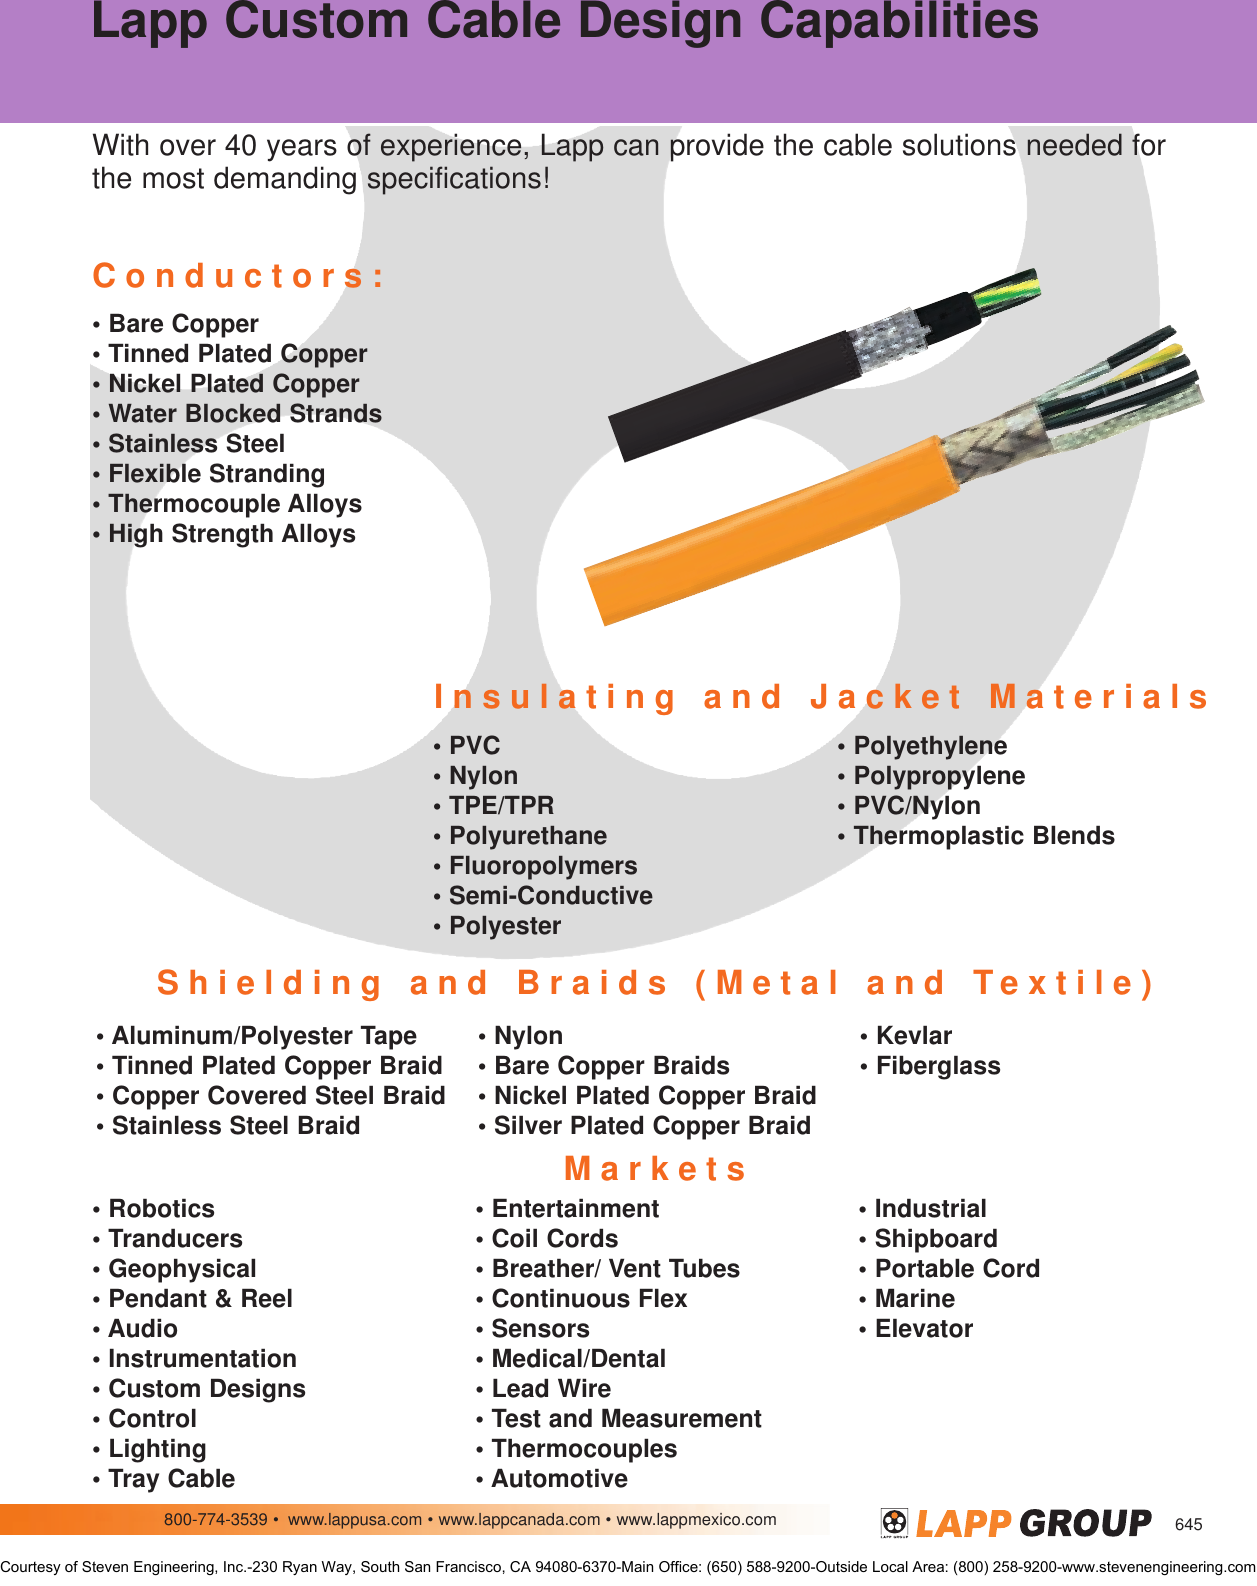 Lapp USA Offers A One stop Solution For Power/signal Cable And